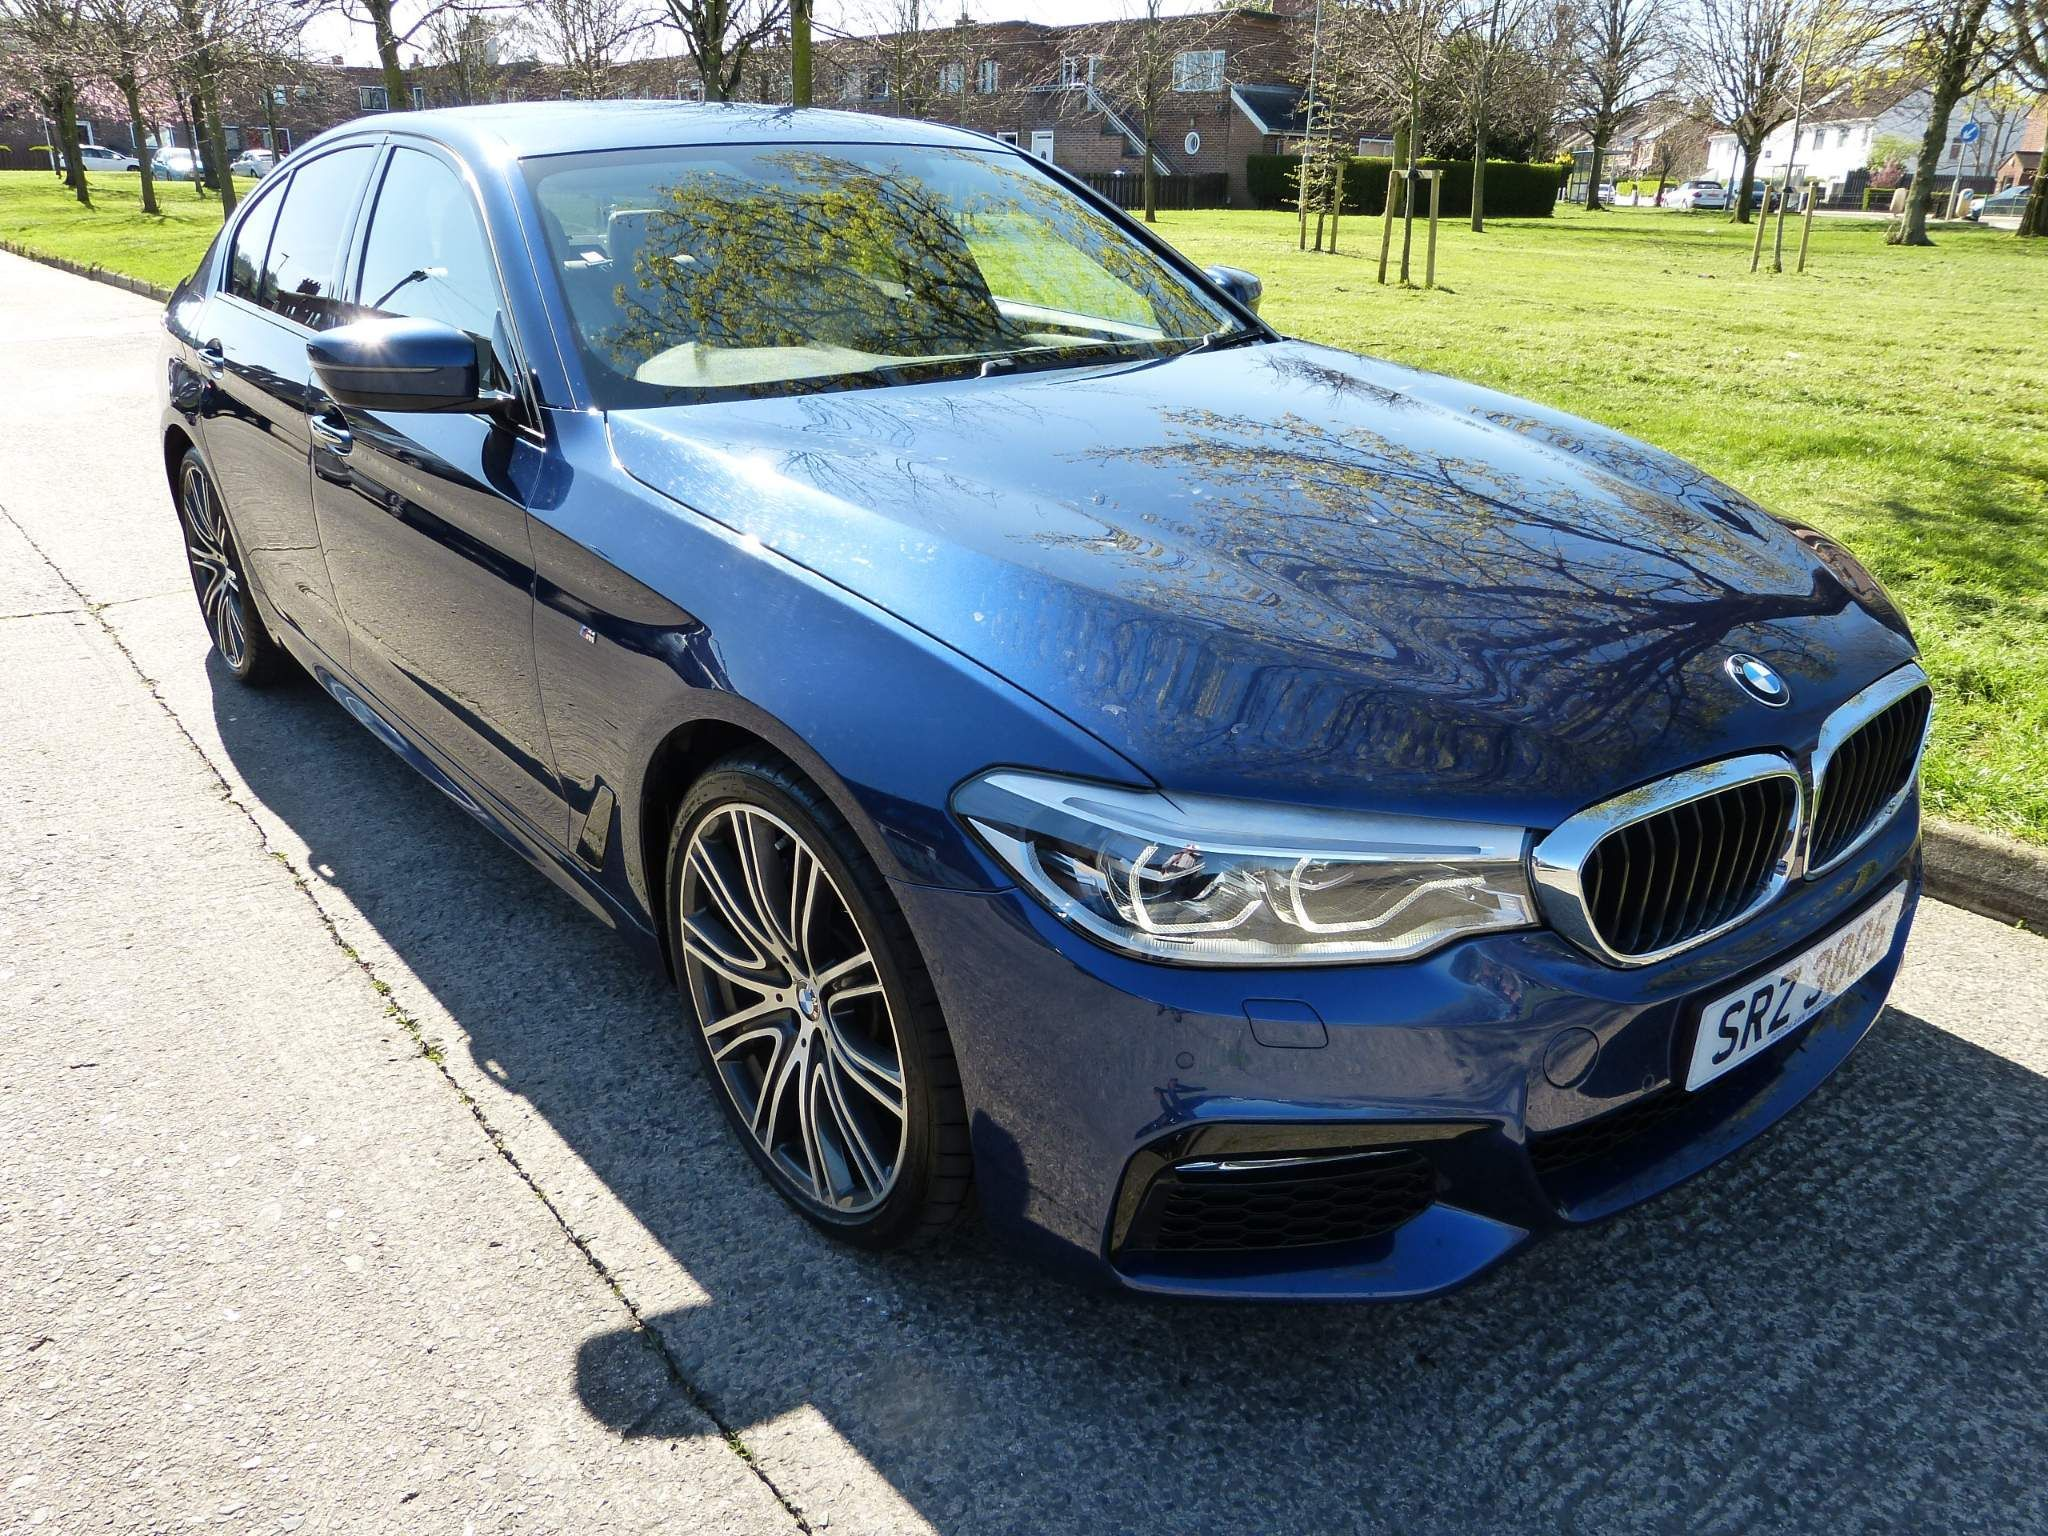 2017 BMW 5 Series 3.0 530d M Sport Auto xDrive (s/s) Diesel Automatic fully loaded – Beechlawn Motors Belfast full